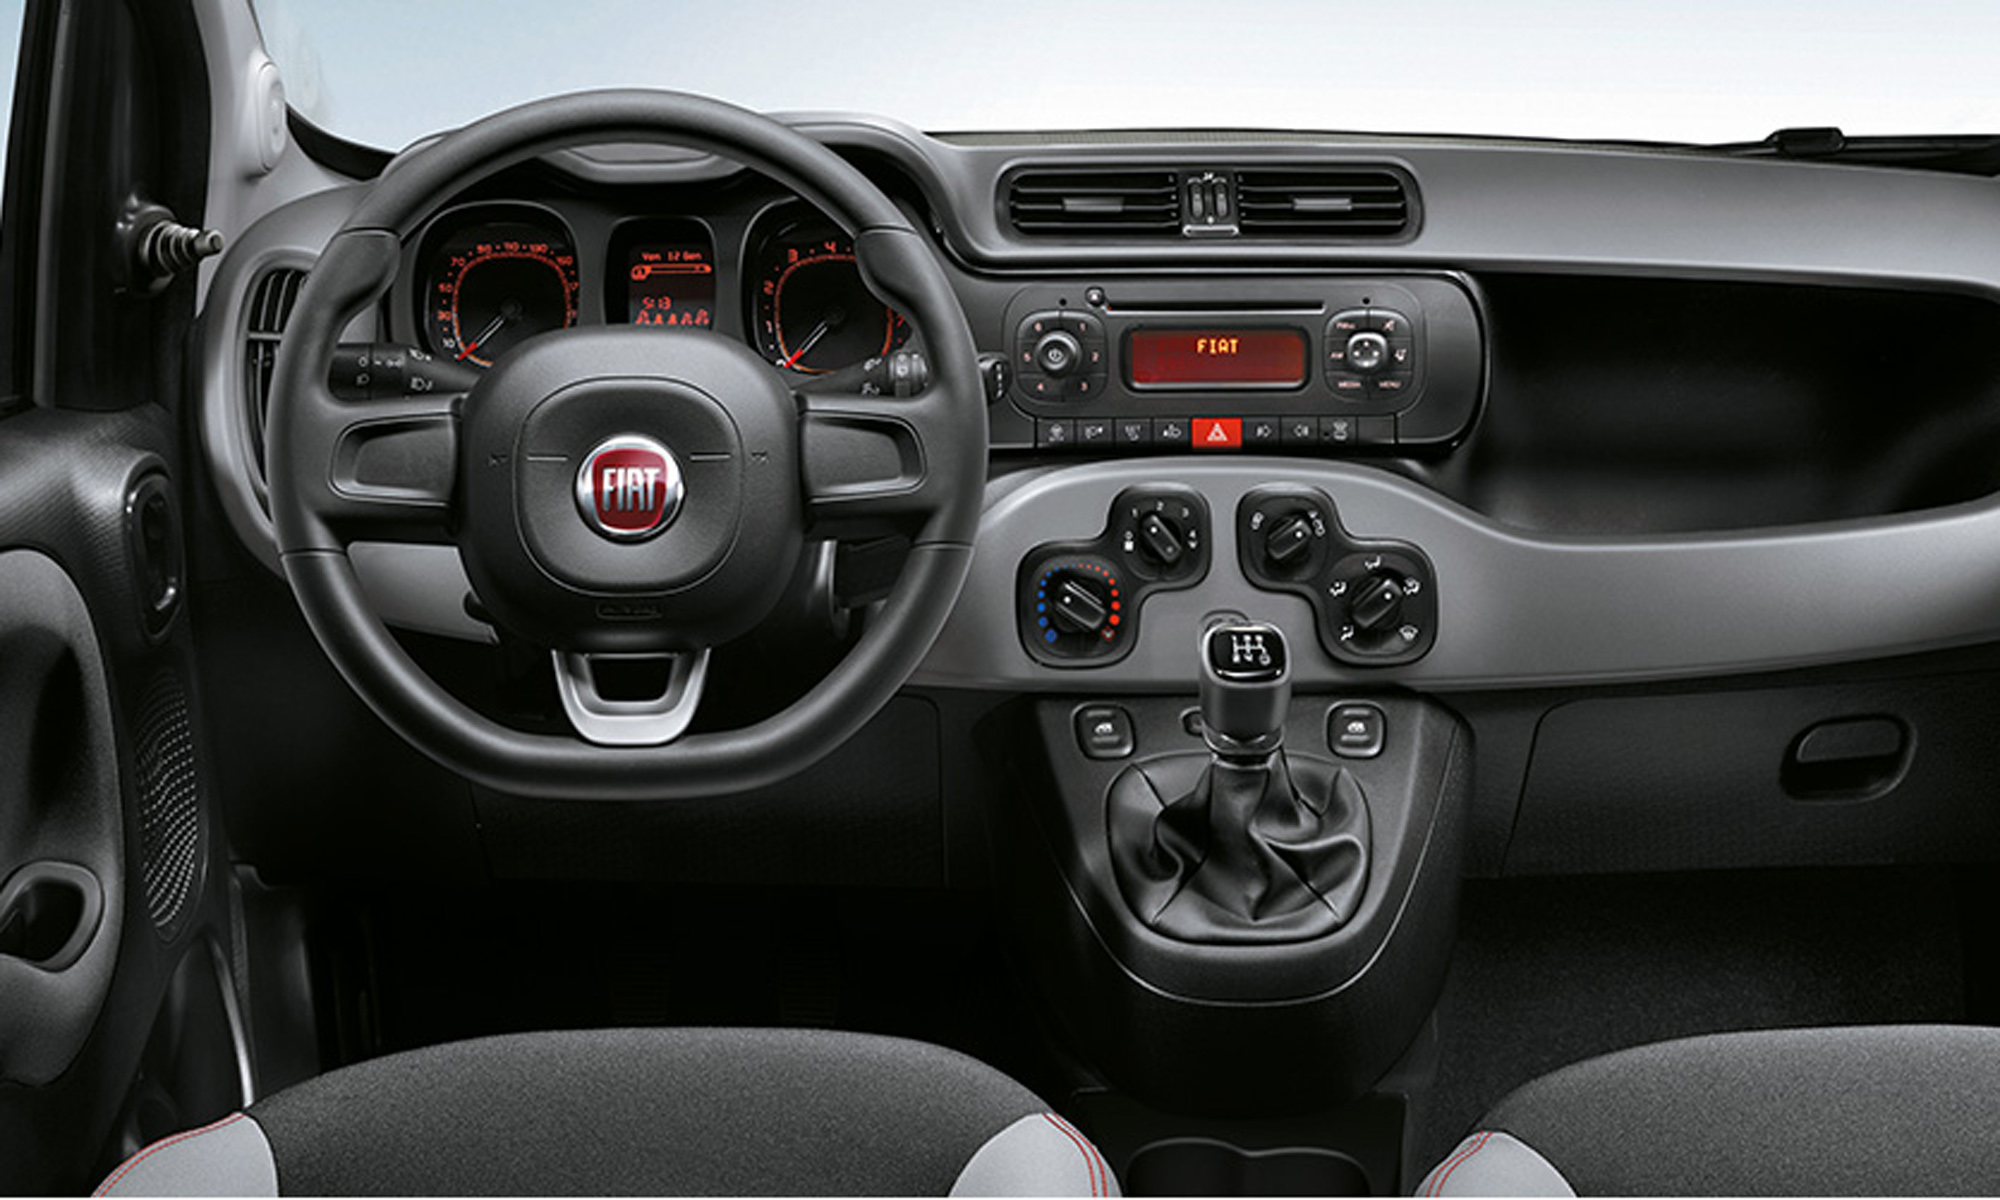 Fiat panda novit per la city car torinese anteprime for Nuove tinteggiature per interni